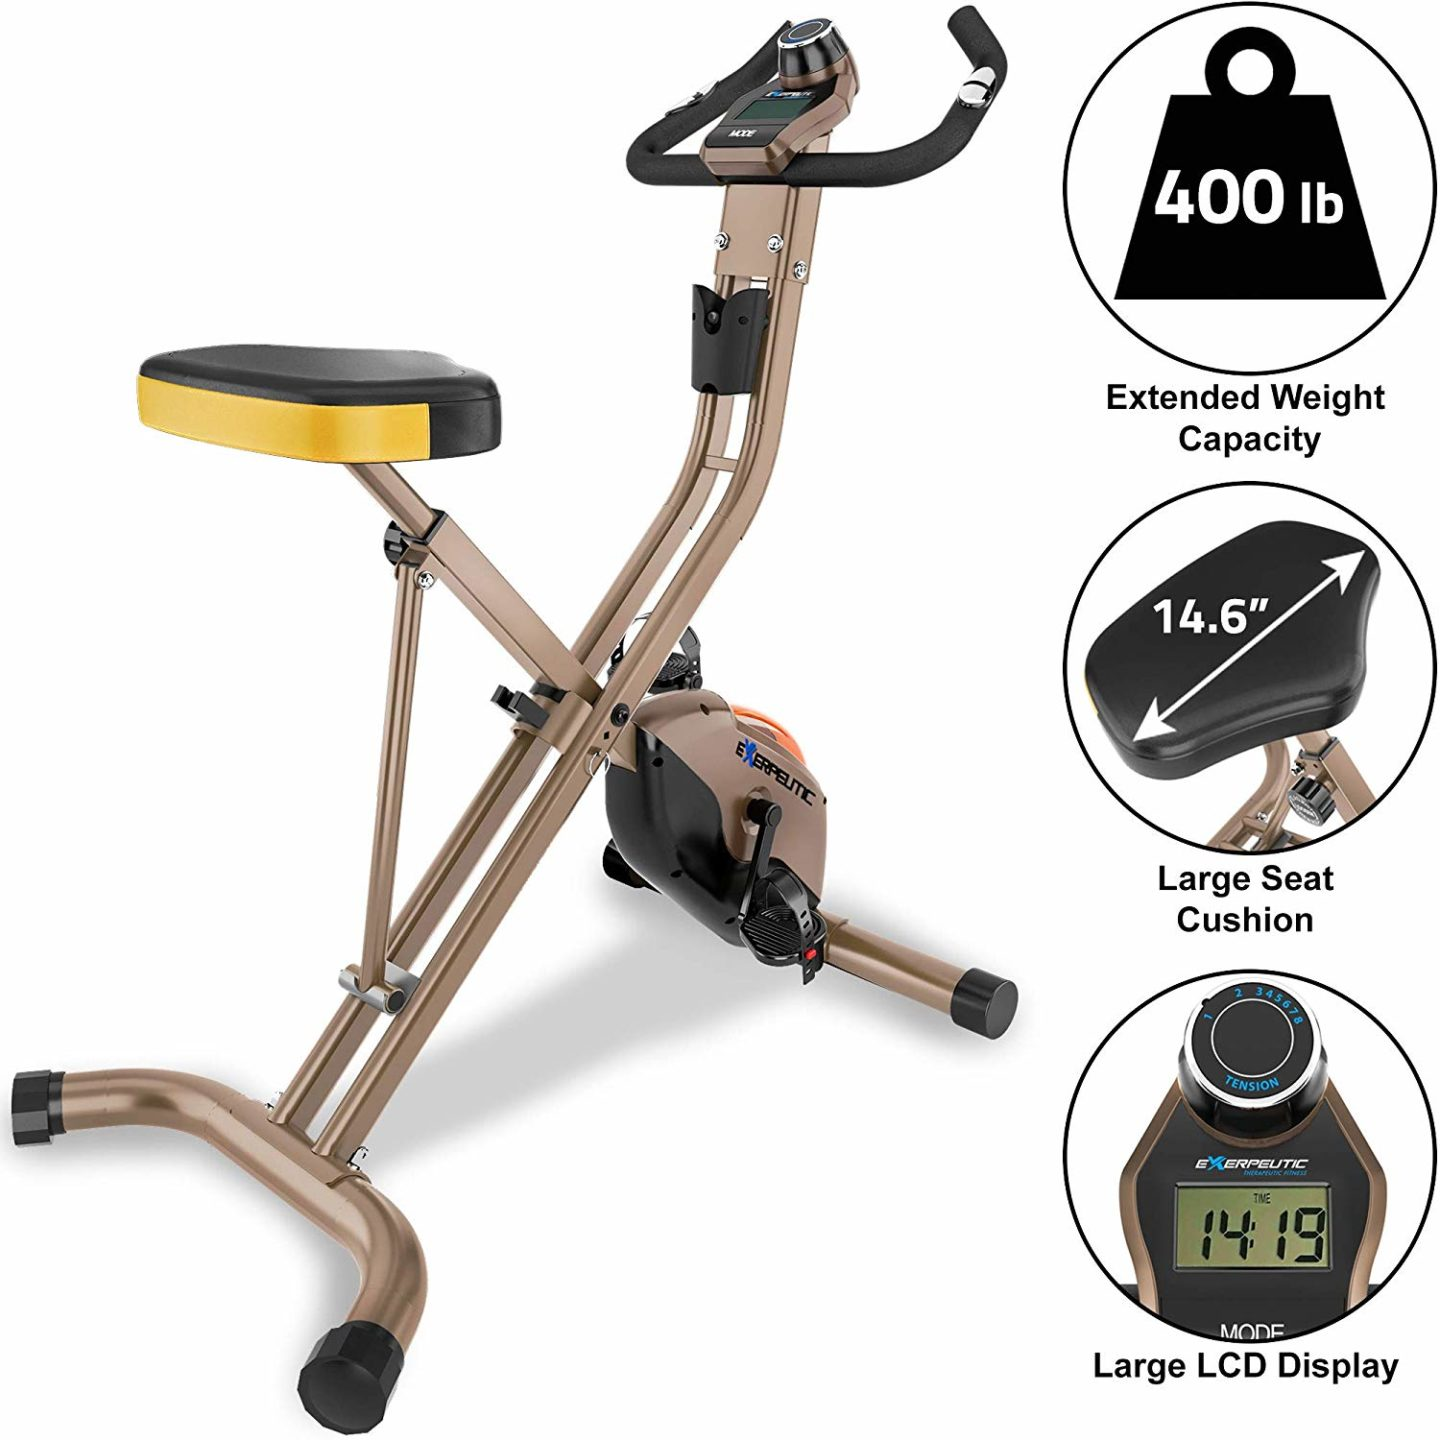 Exerpeutic GOLD 500 XLS Folding Upright Bike